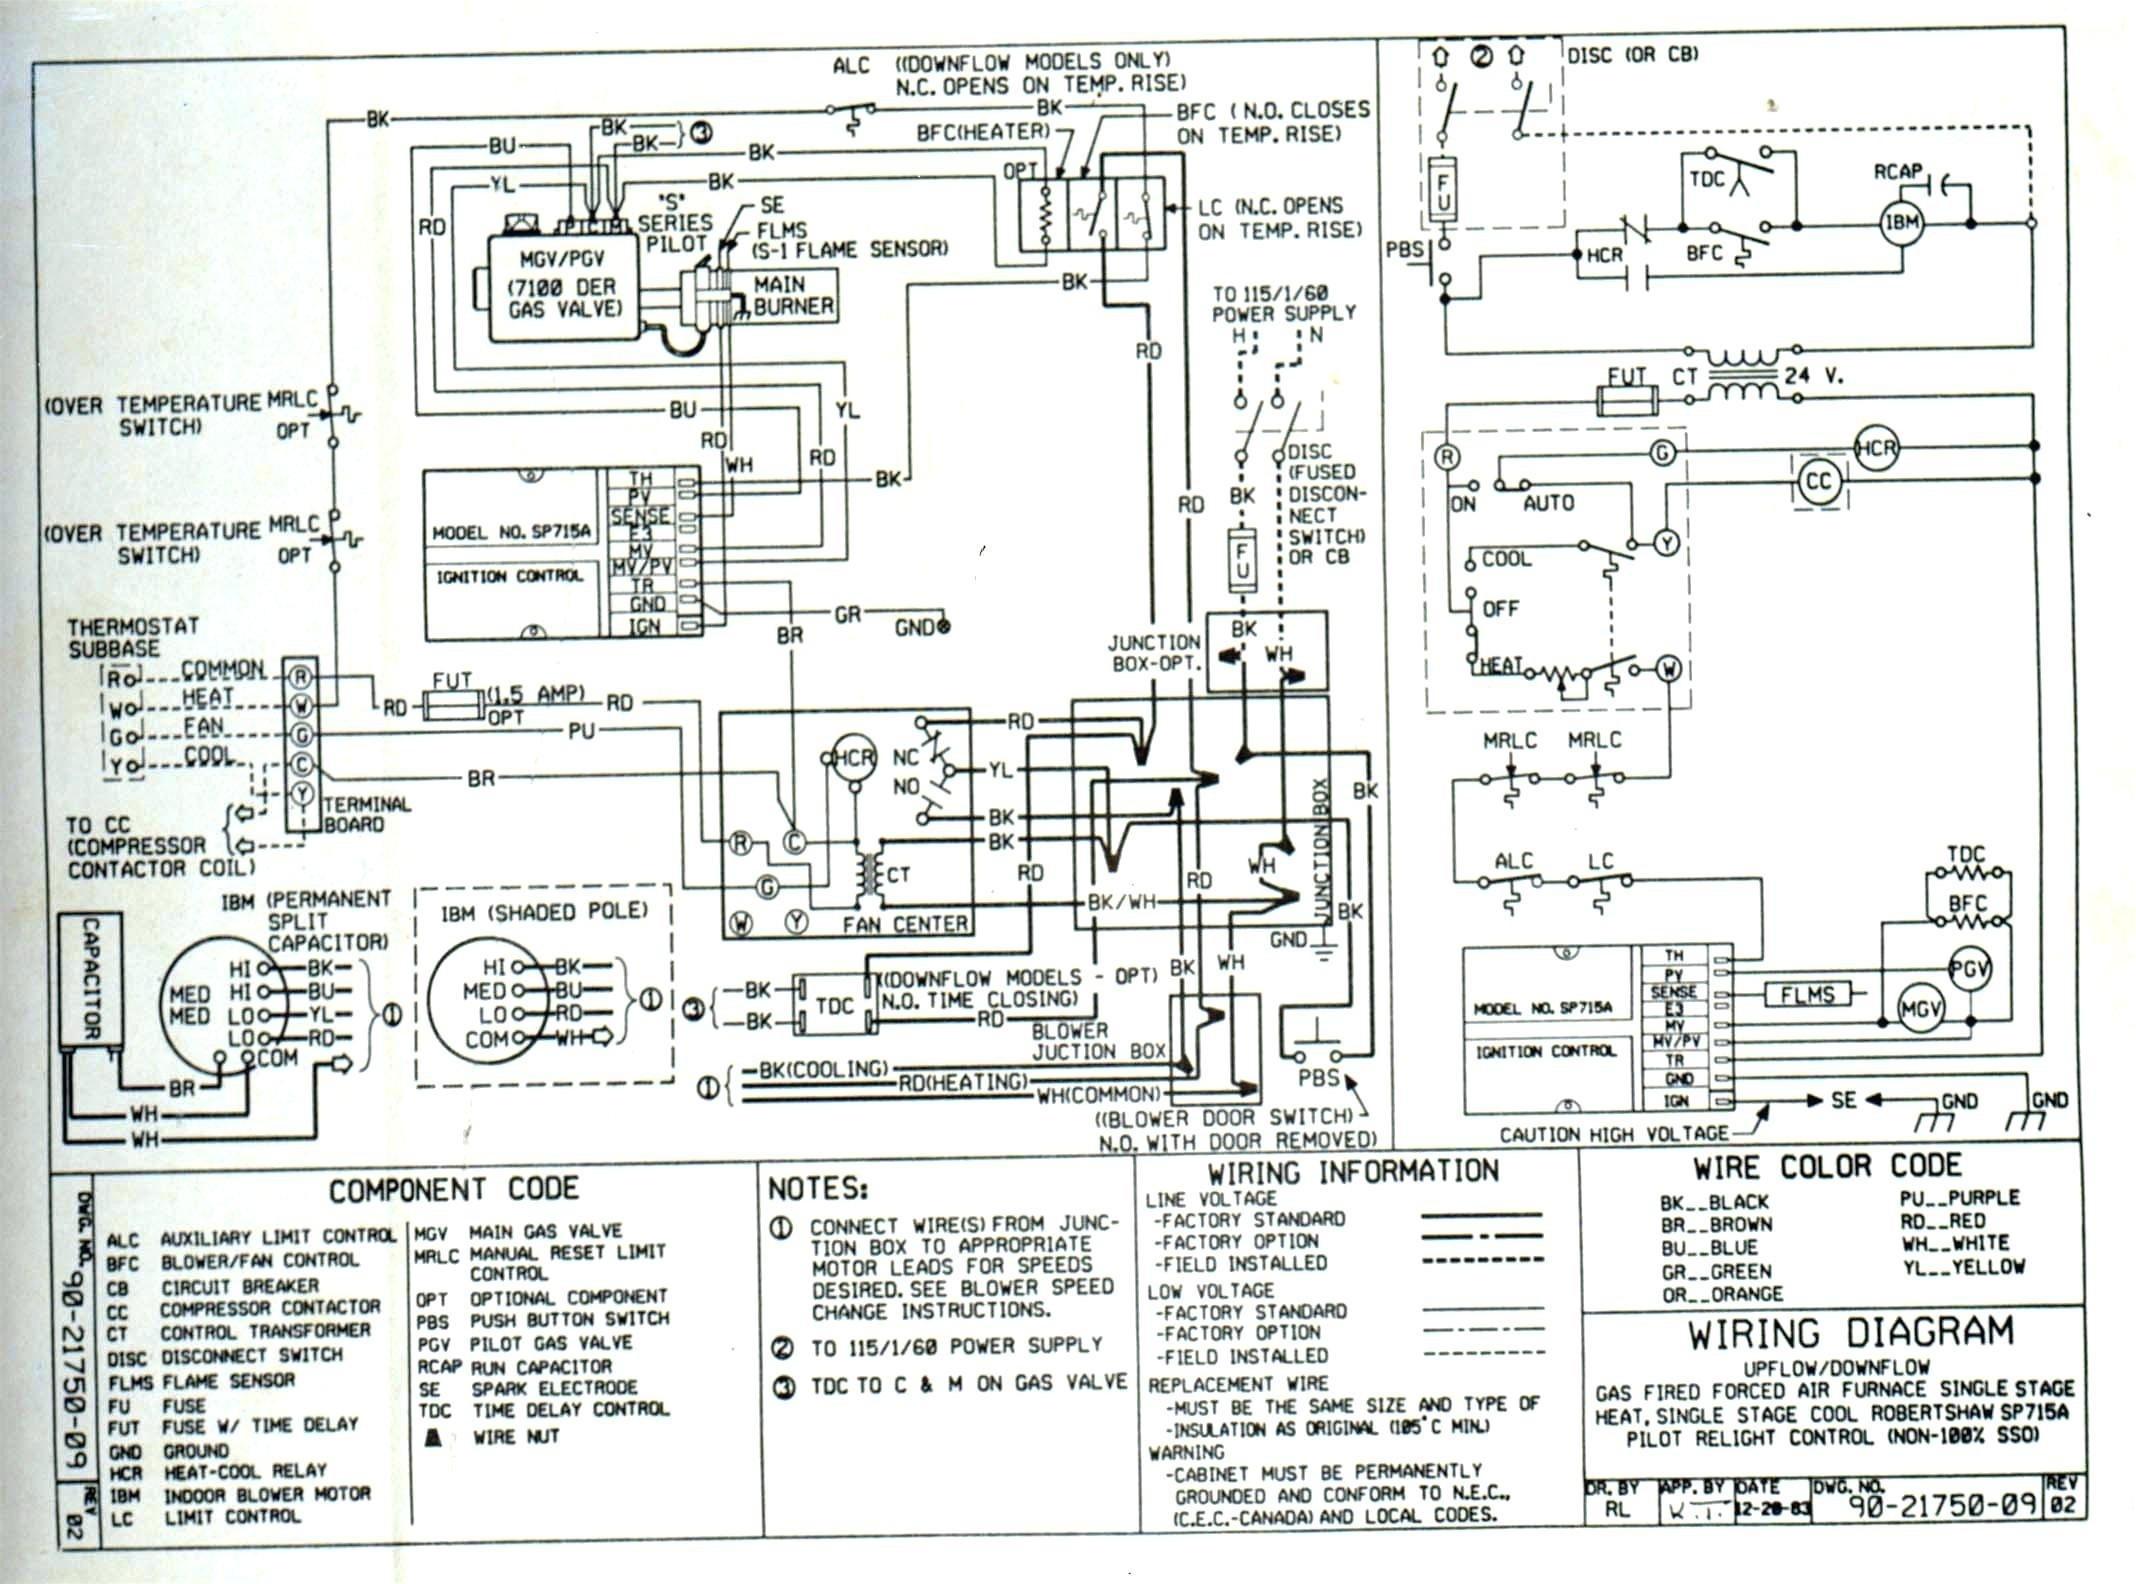 Trane Xt500c thermostat Wiring Diagram - Wiring Diagram Detail Name Trane Xt500c thermostat 15g